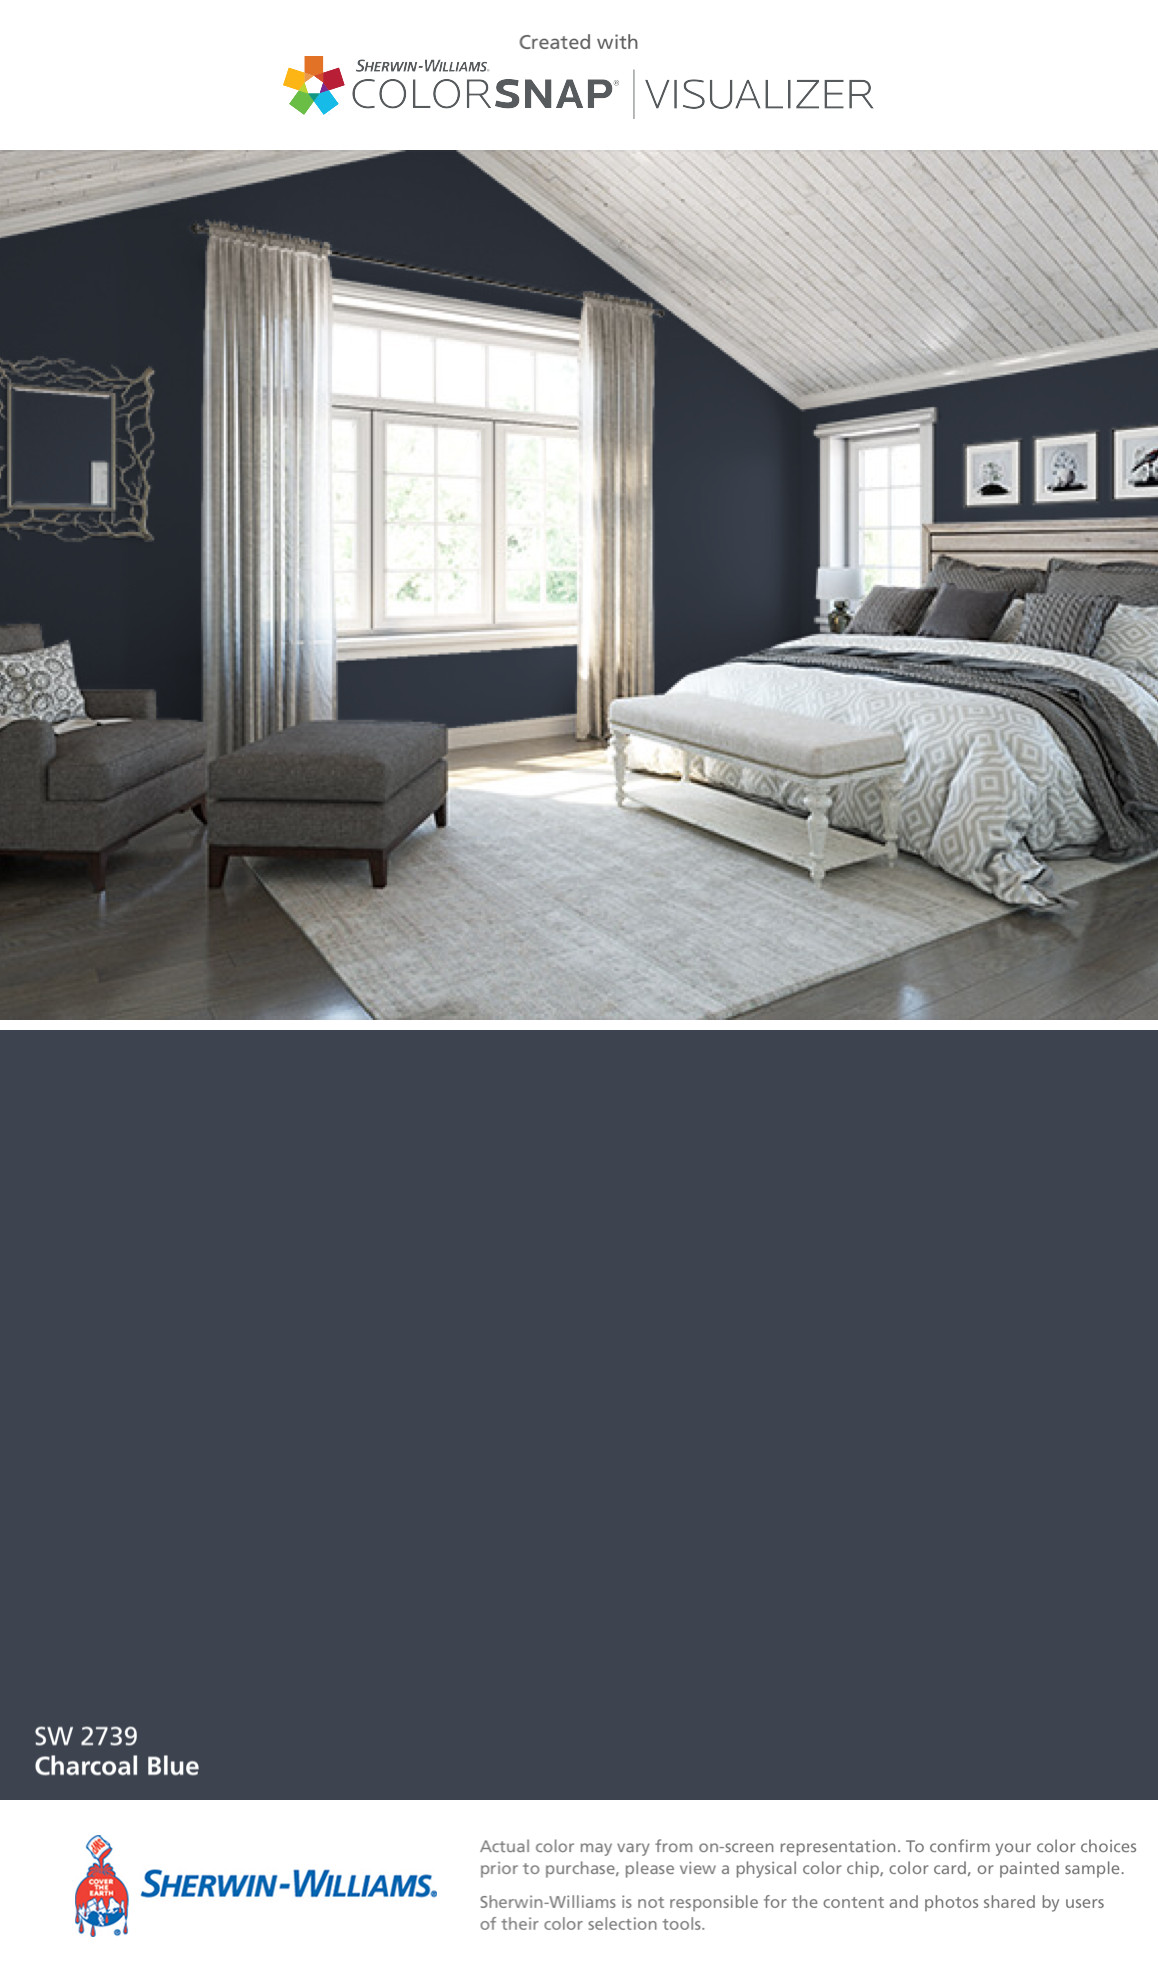 Ideas for Bedroom Color Best Of I Found This Color with Colorsnap Visualizer for iPhone by